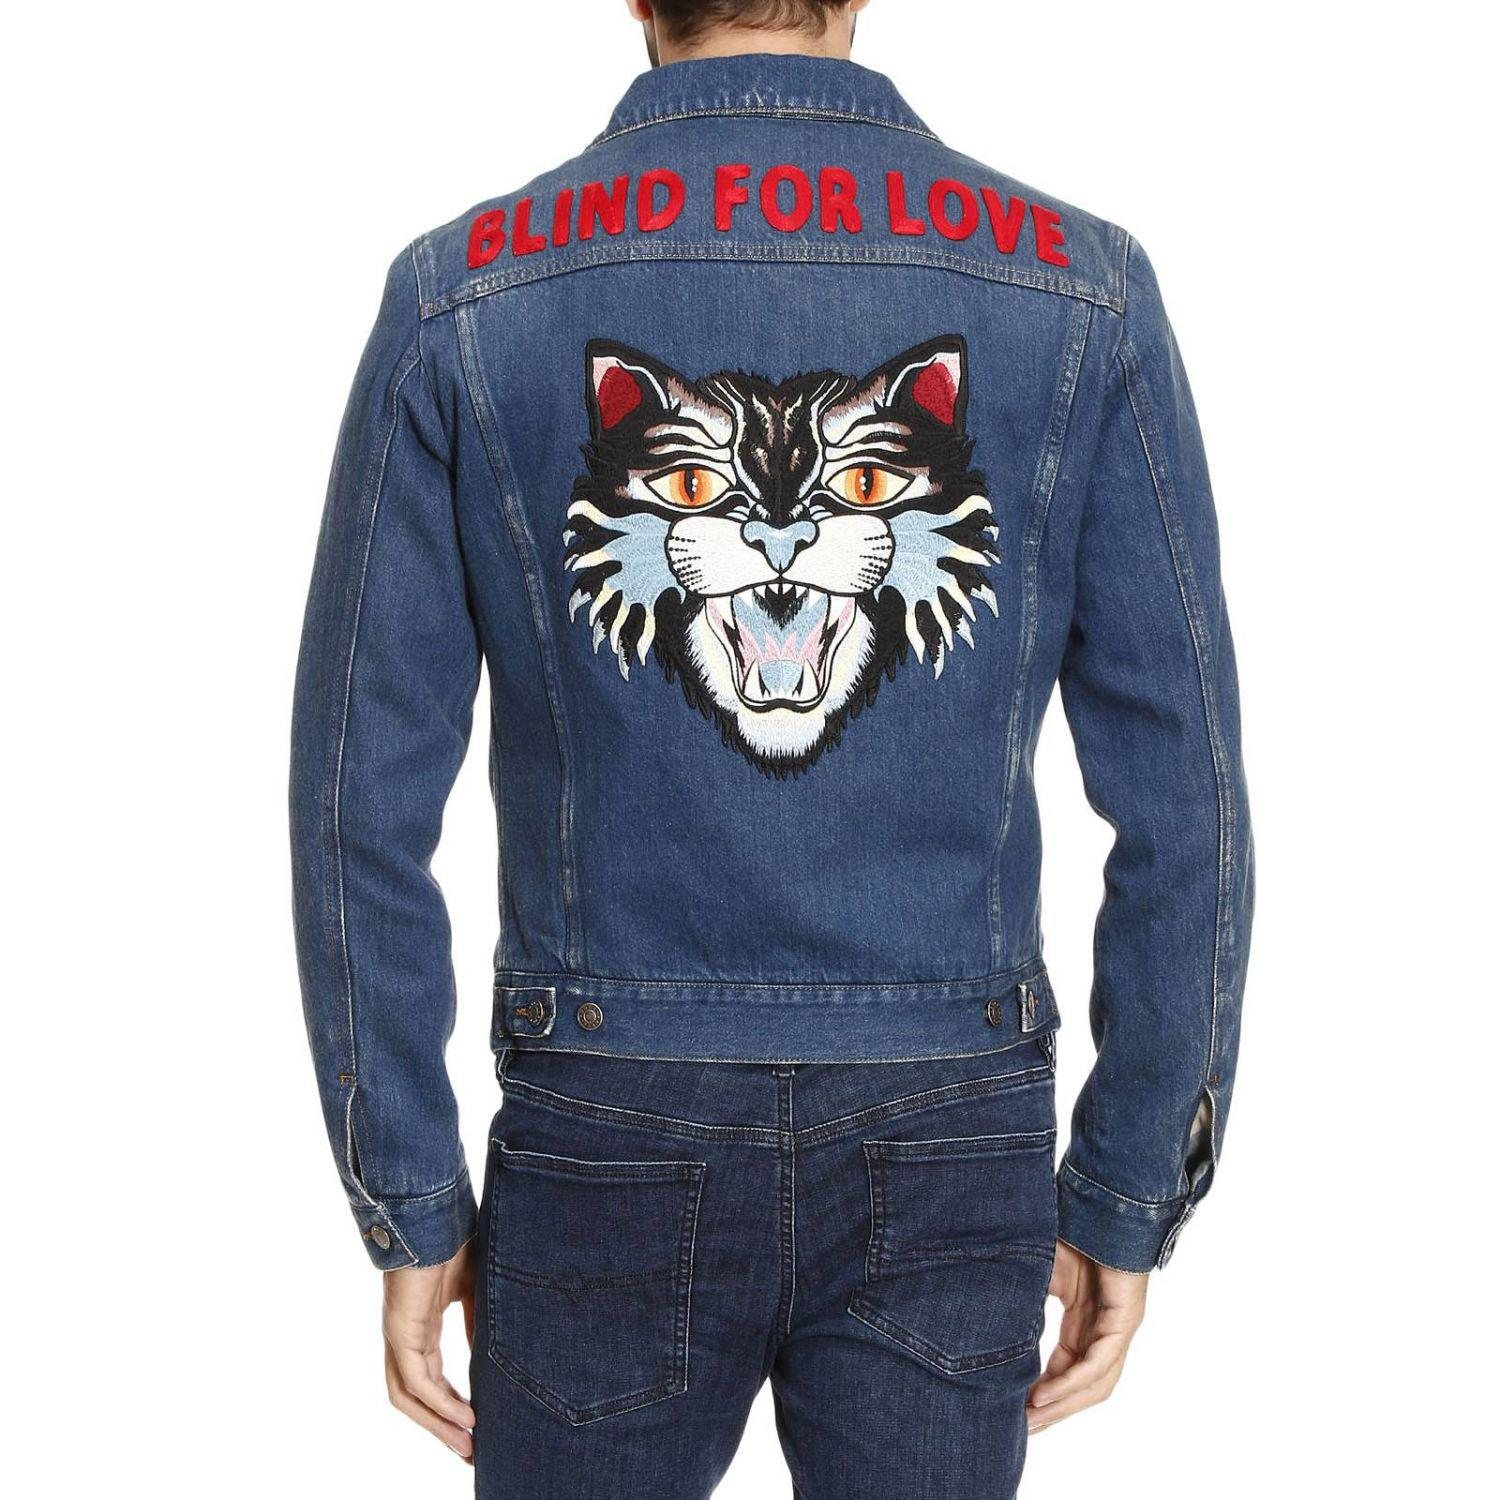 7ba3aa0e598 Lyst - Gucci Denim Jacket With Angry Cat And Blind For Love Maxi ...